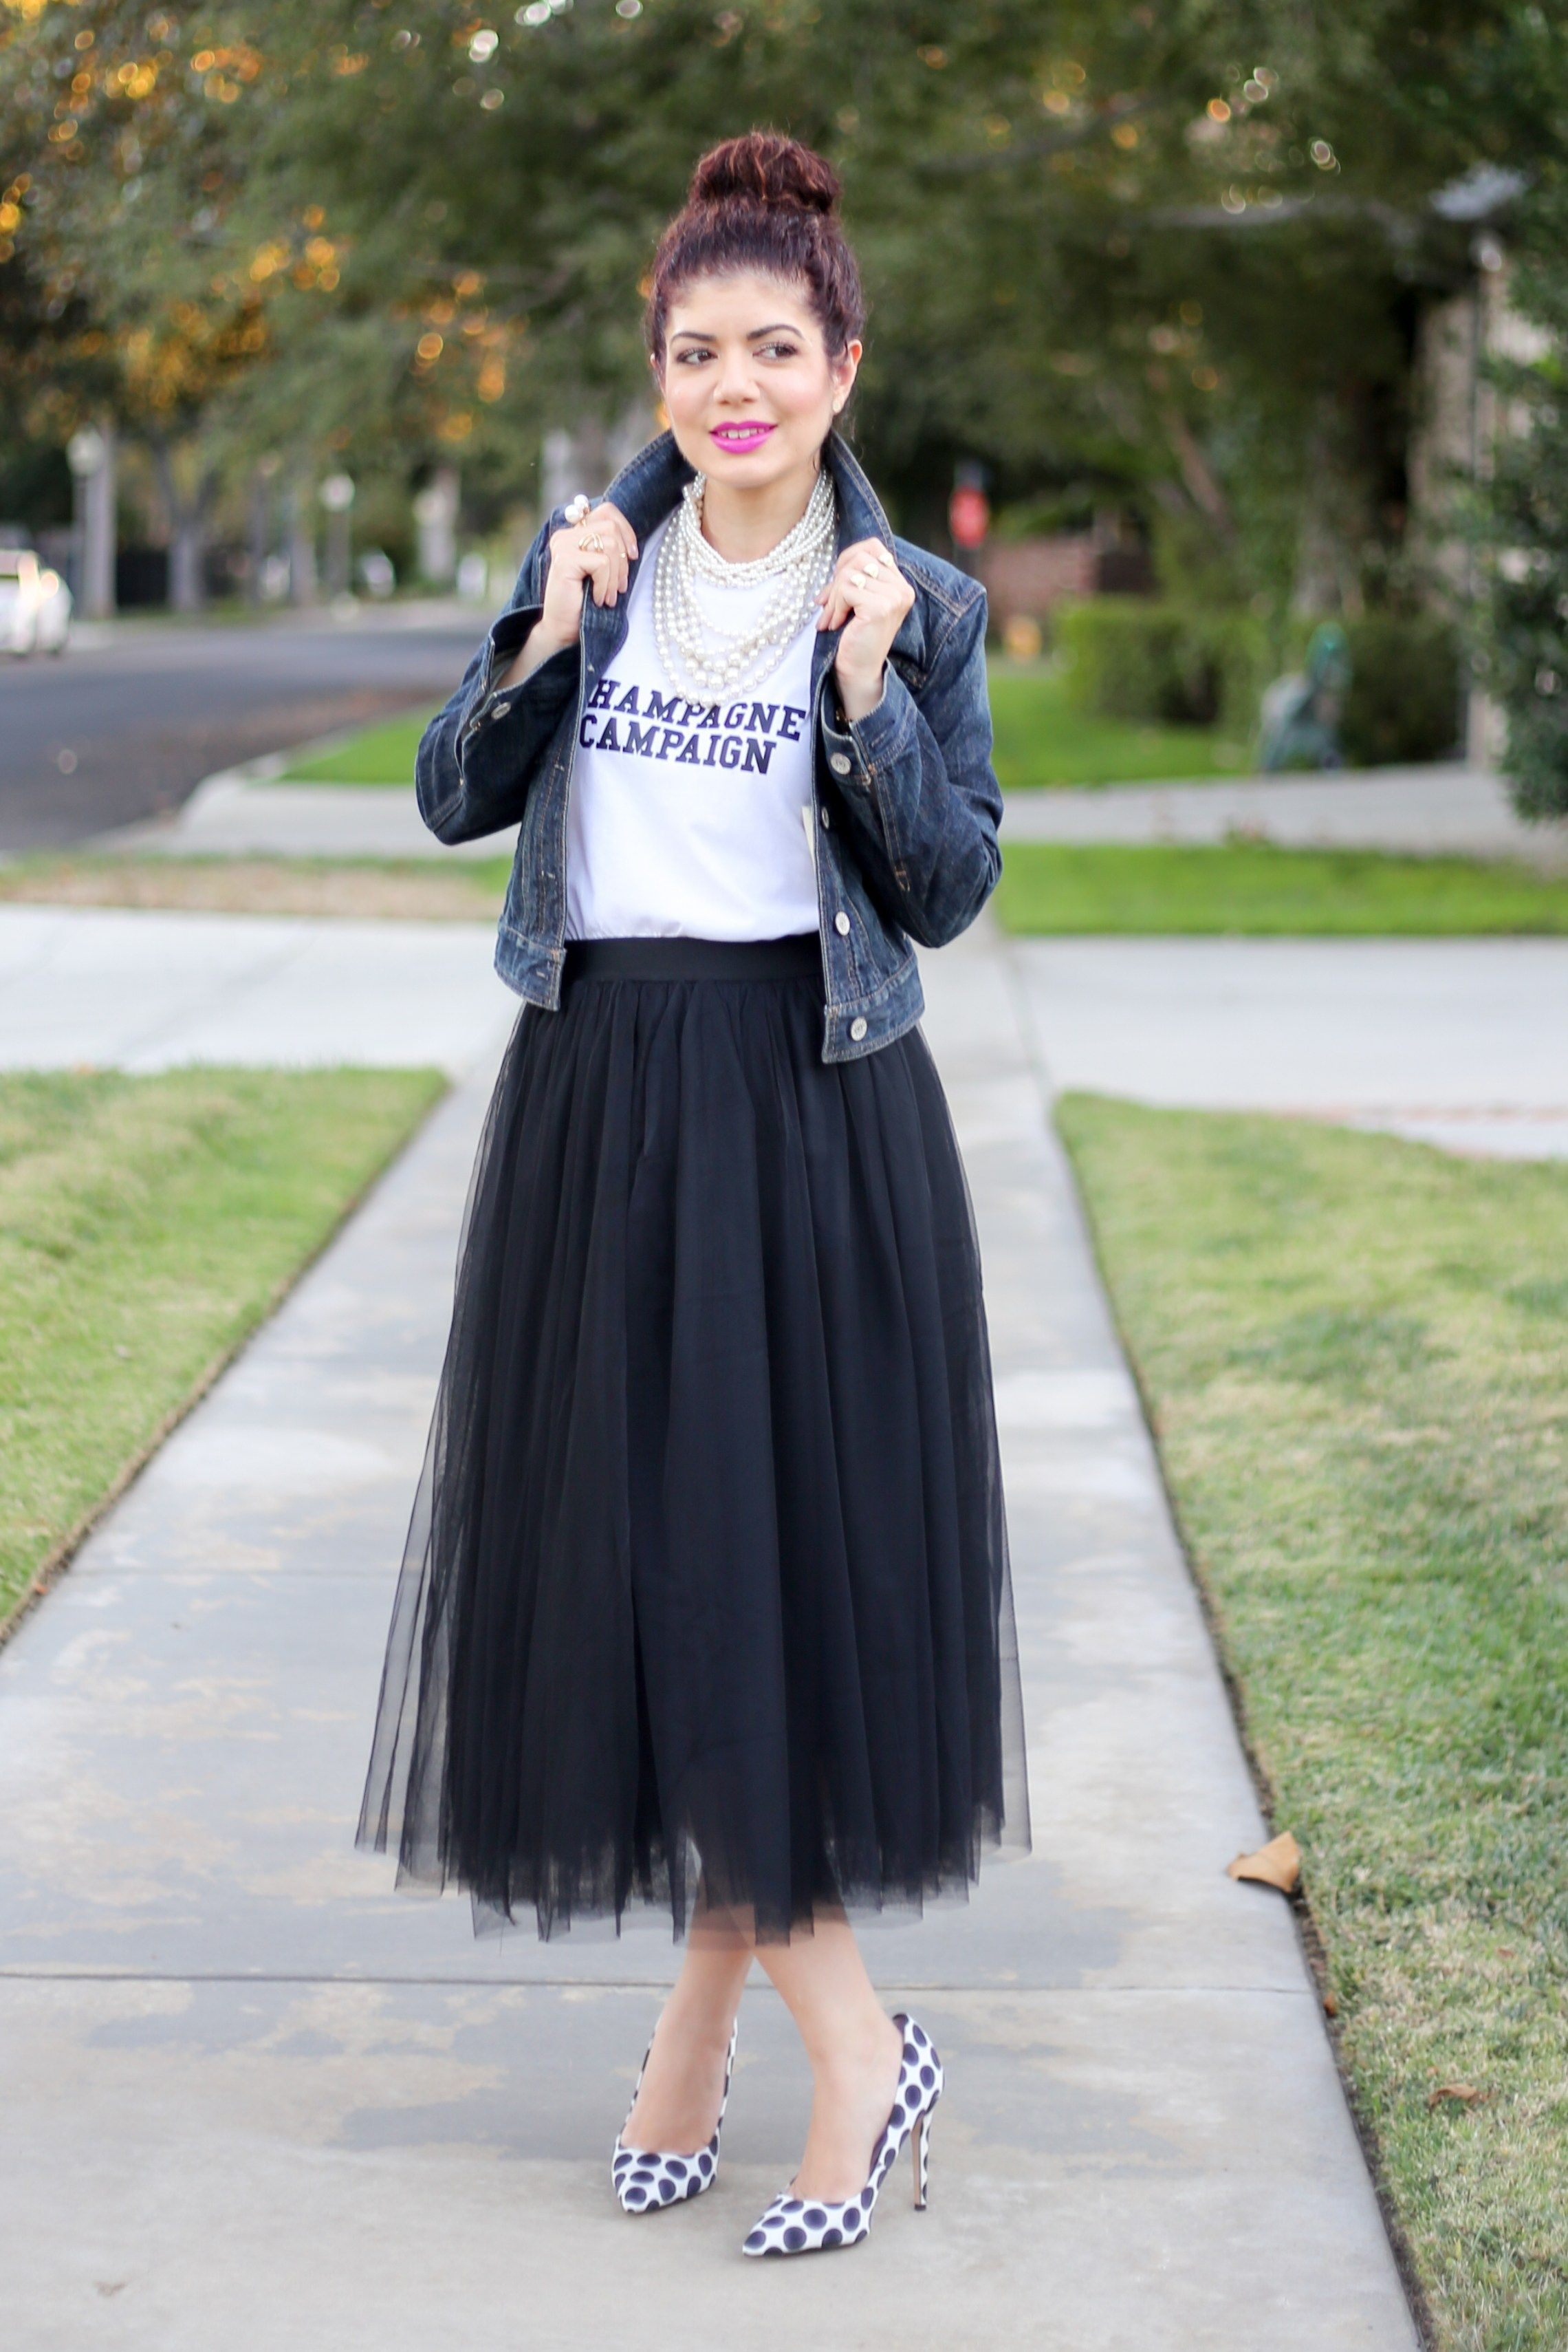 7f9f031b95 Tulle skirt   tulle skirt outfit   how to wear a tulle skirt   black tulle    denim jacket  graphic tee  polka dot pumps   feminine outfit   fashion    style ...